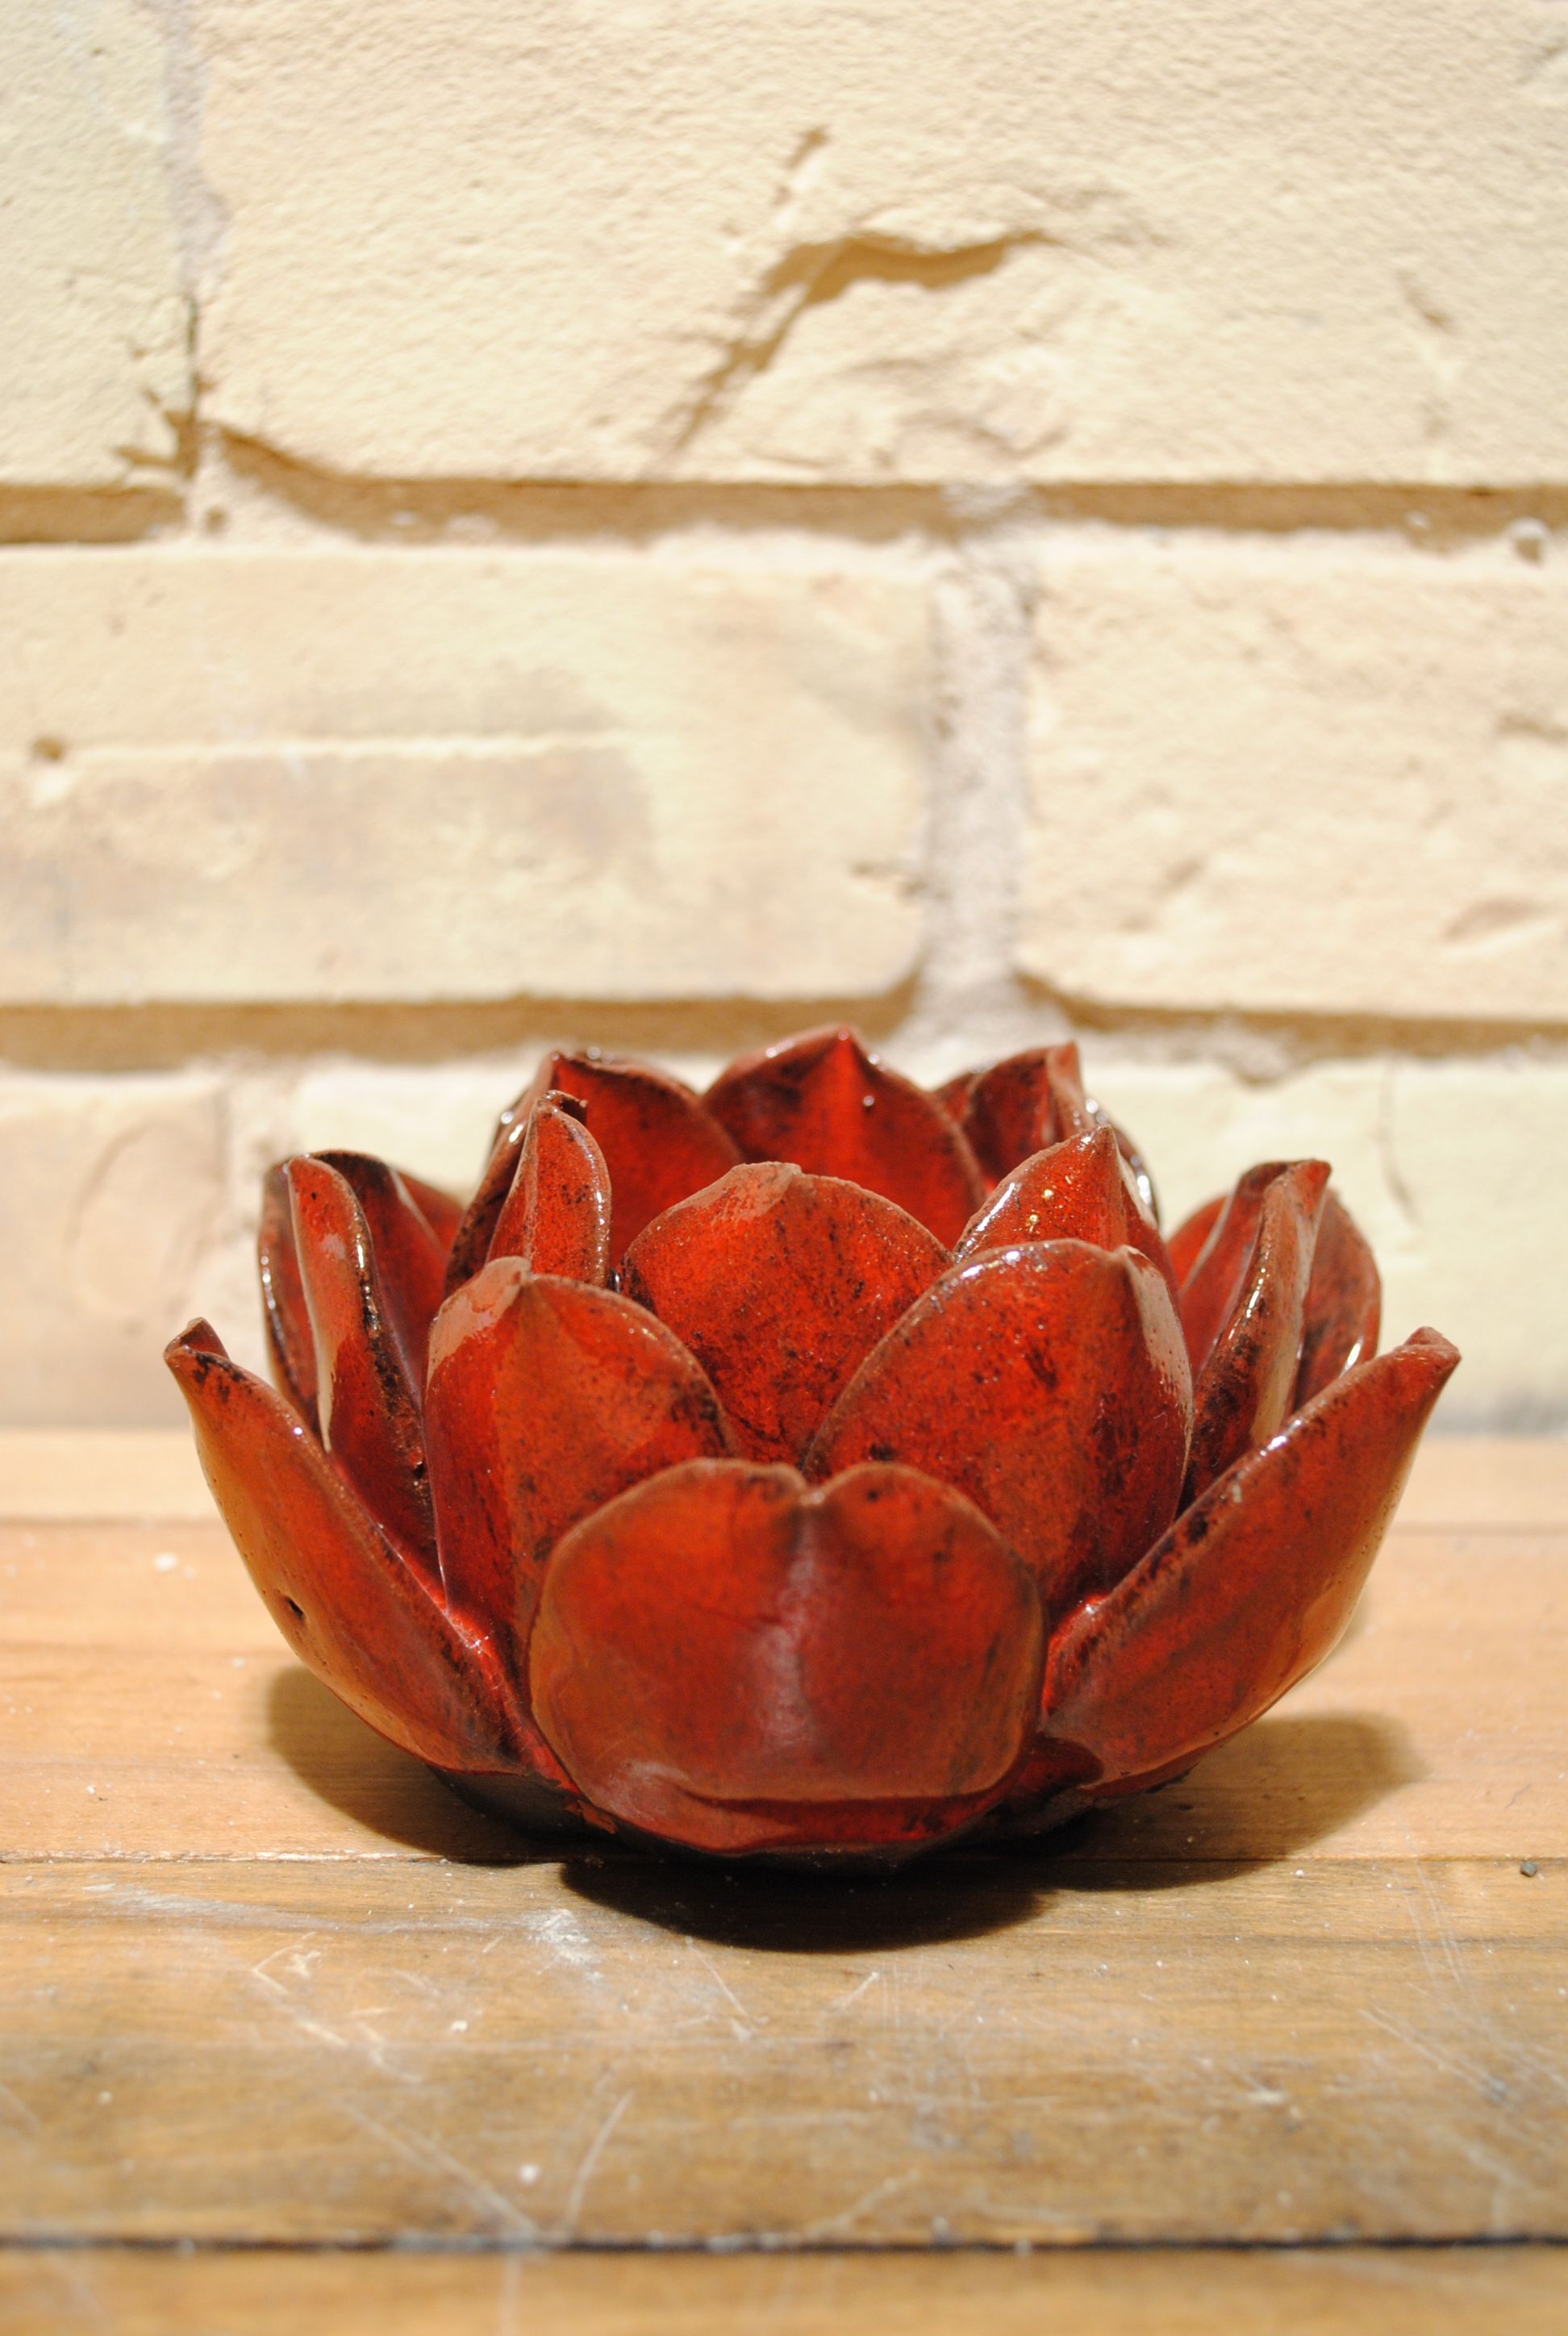 Mini lotus flower candle holder i would like this in white for my